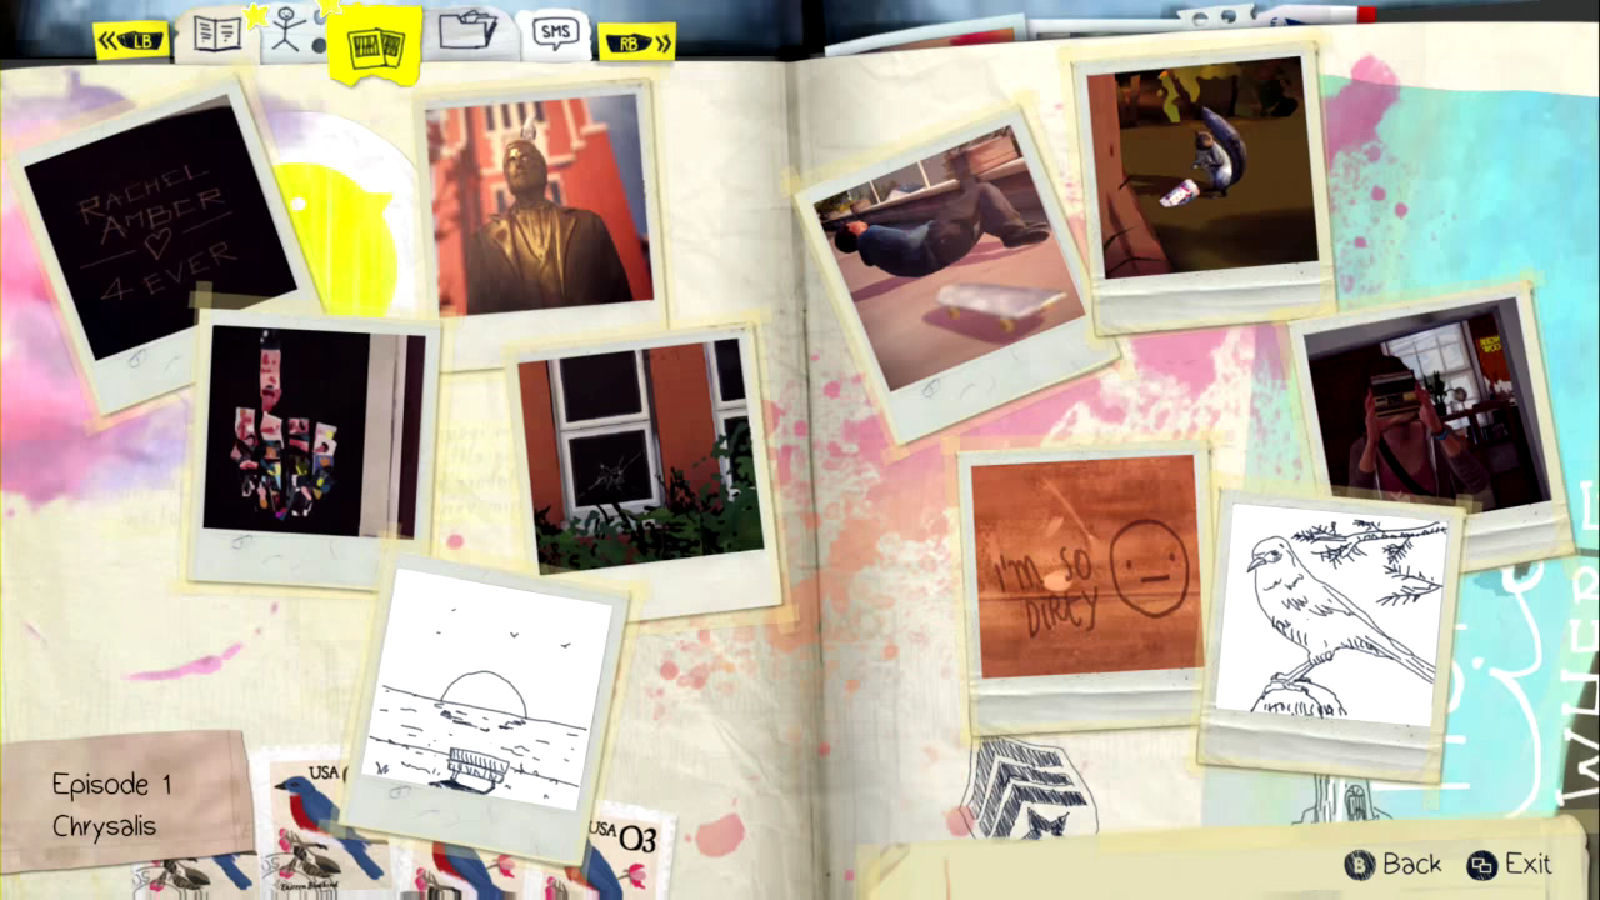 Life Is Strange Optional Photos Locations Guide